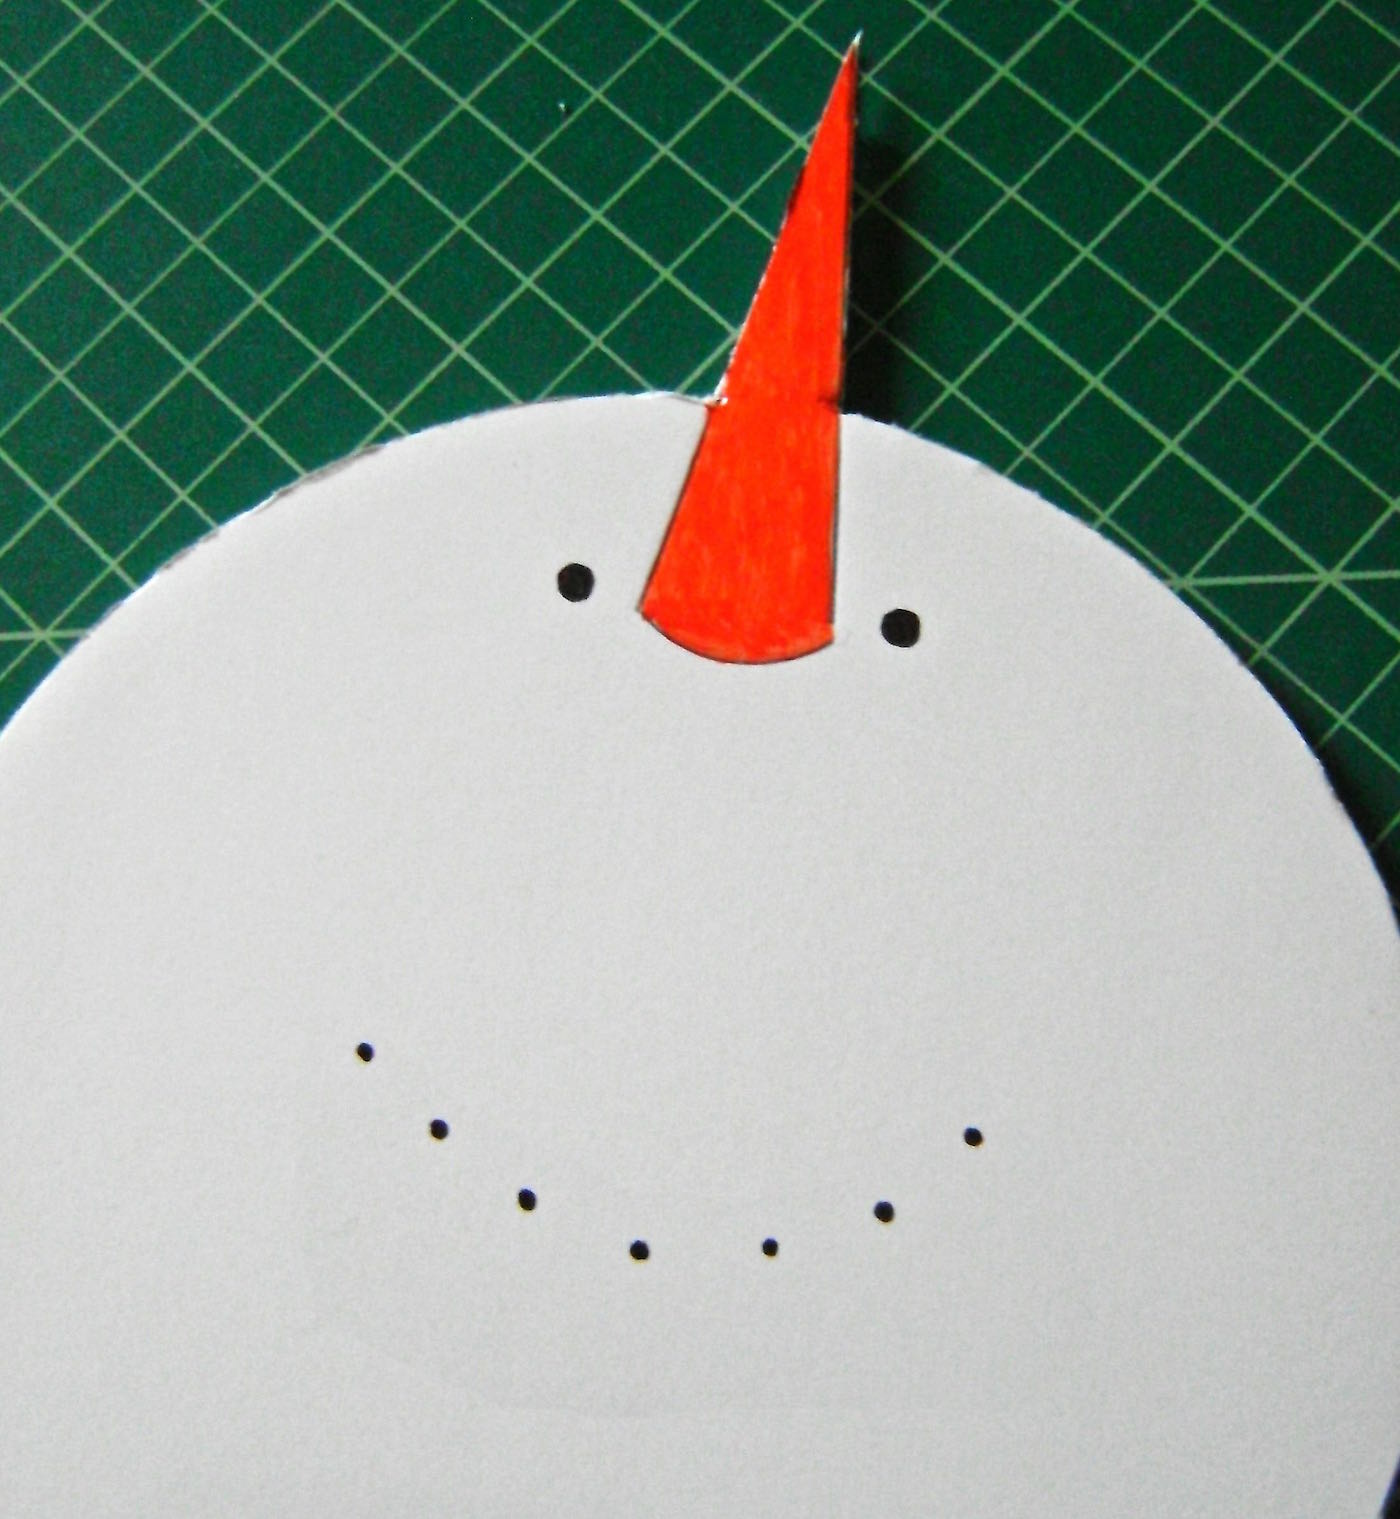 step 3 - Cut out the completed snowman shape with the craft knife. Smooth the edges of the foam board with sandpaper. Use orange paint to color the nose. Outline the color with a black marker. Use the marker to create the eyes, mouth, and buttons down the center of the middle circle.